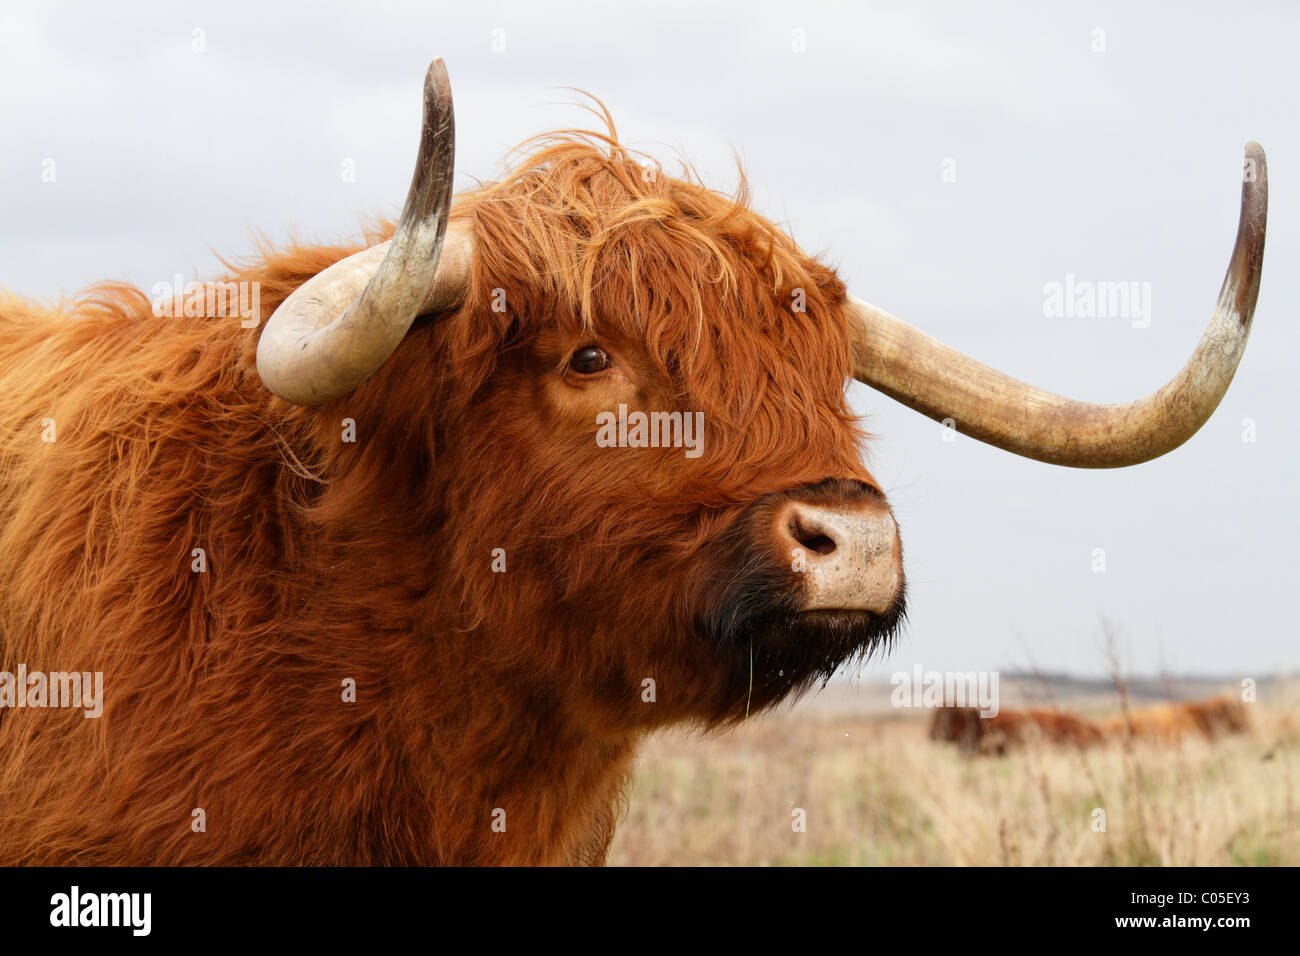 a highland cow with one eye looking at the viewer stock photo